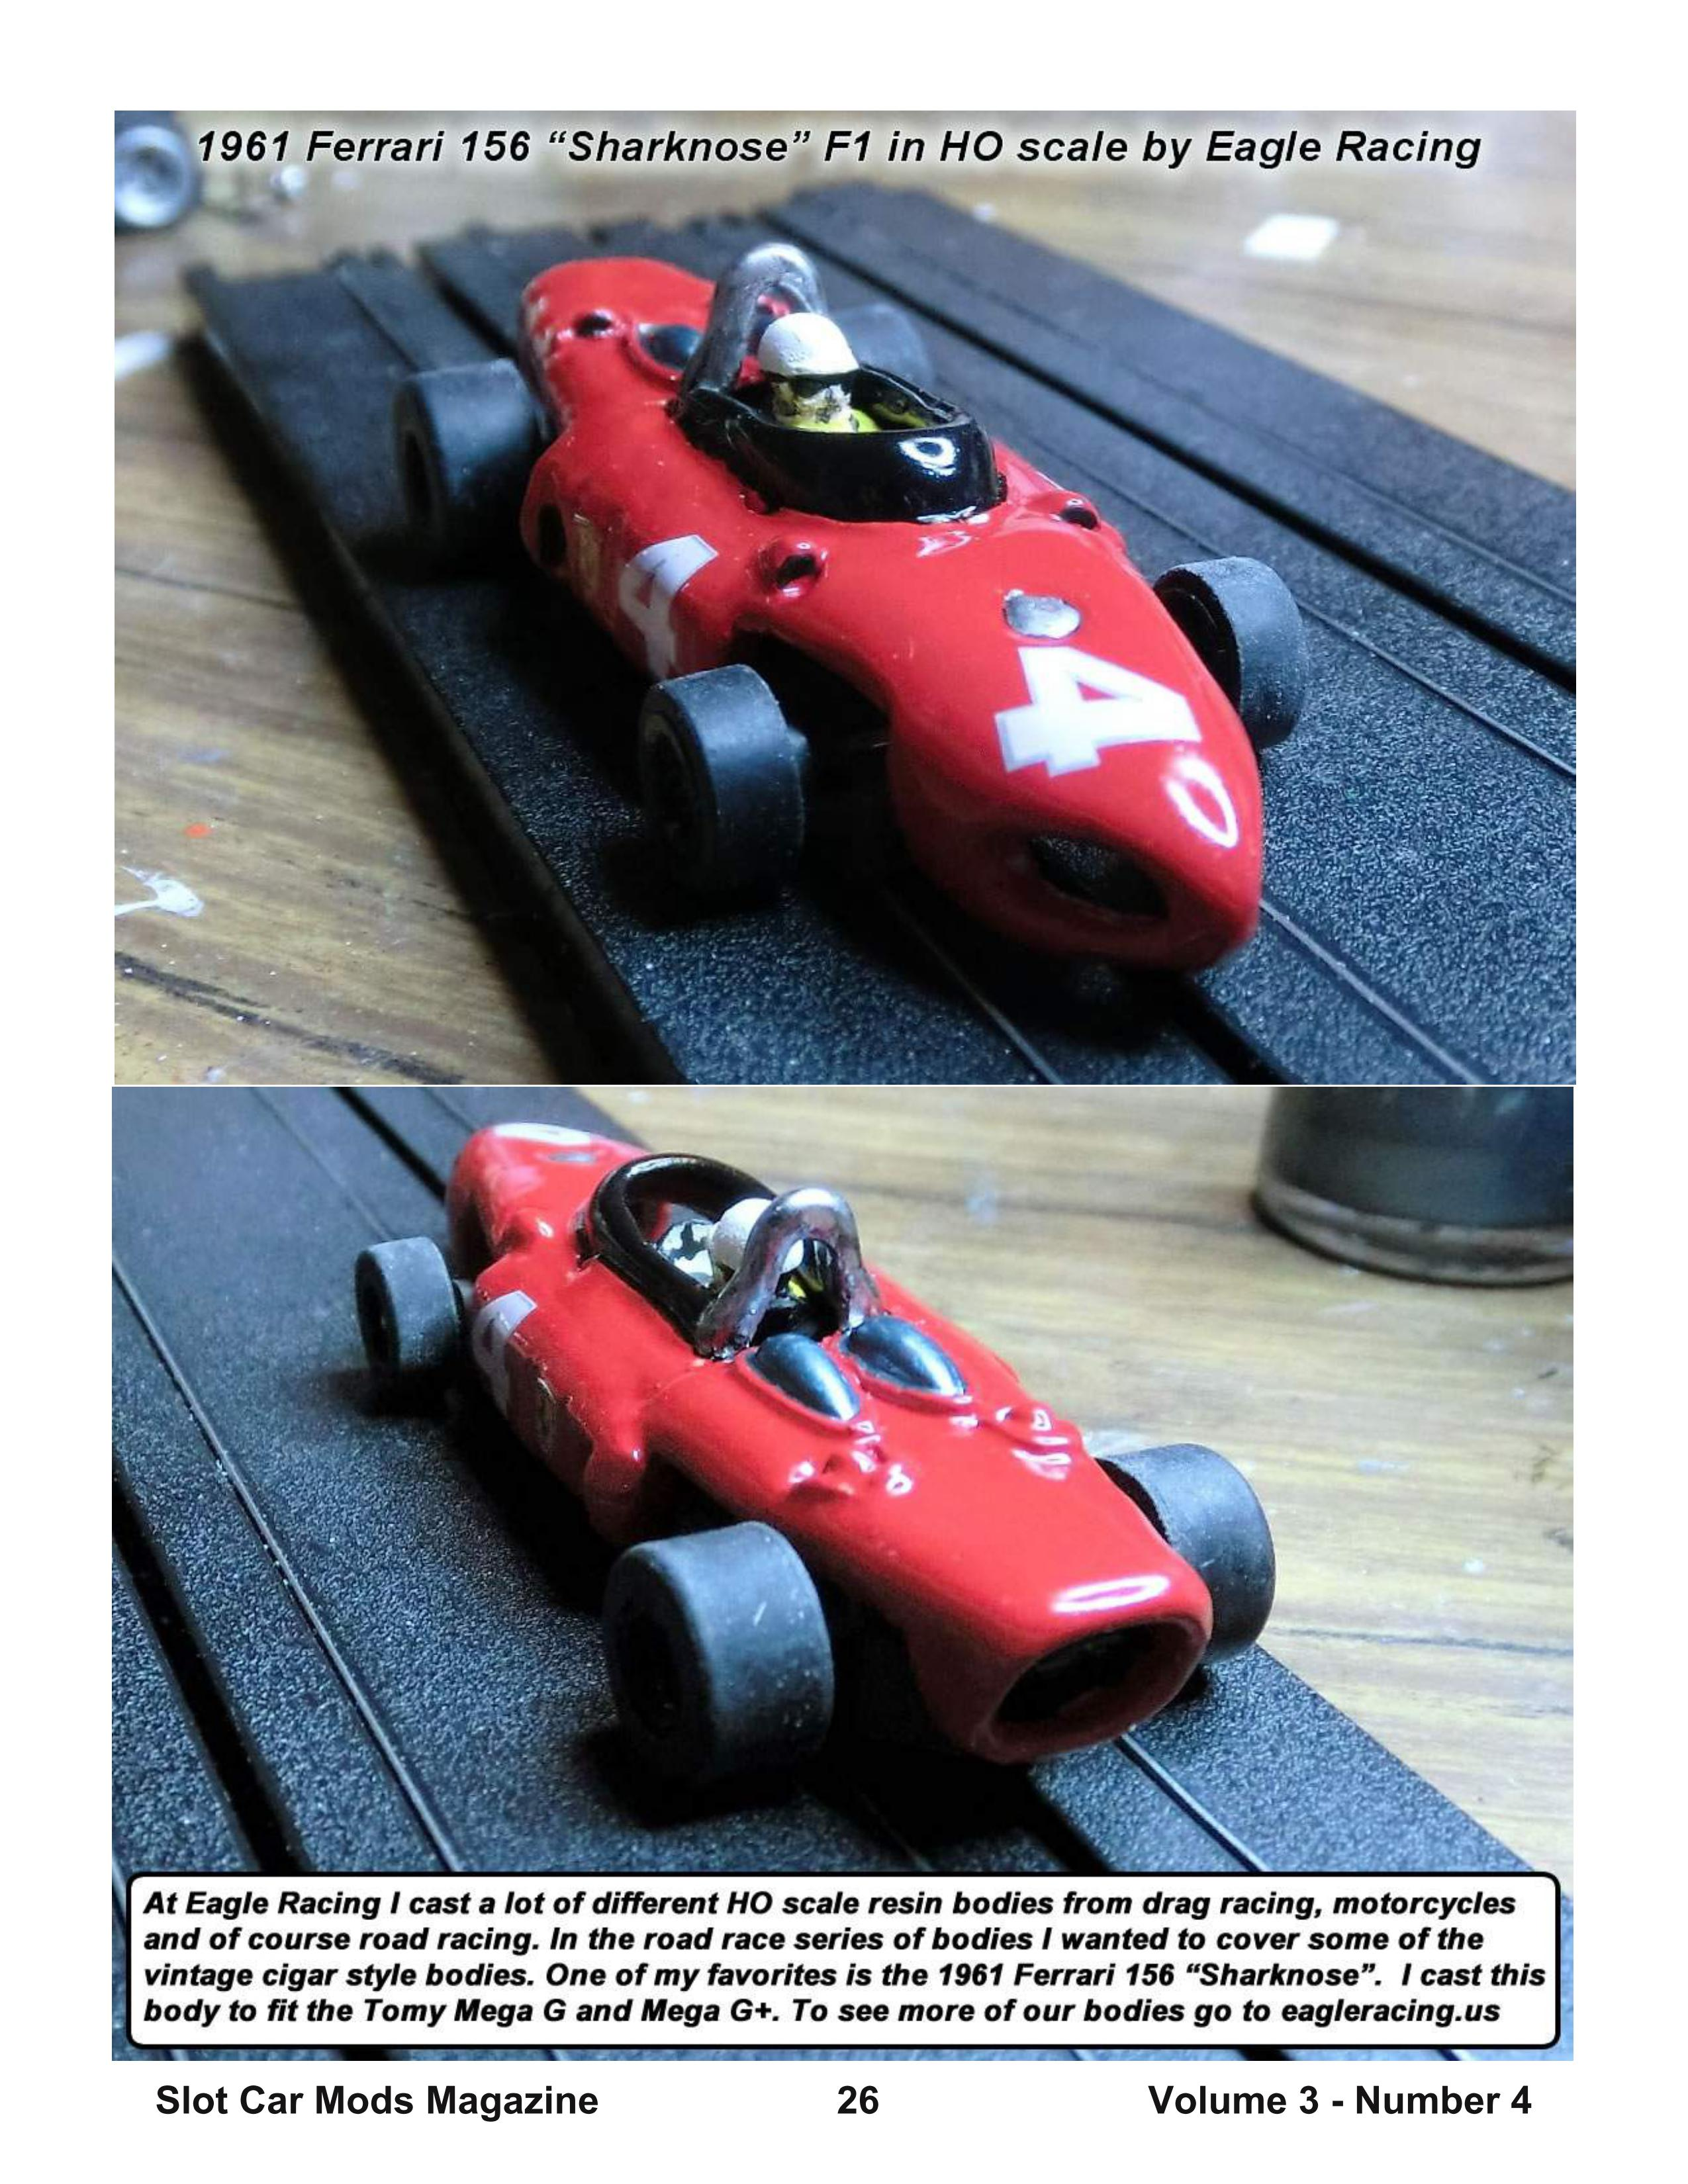 Slot Car Mods Magazine welcomes you